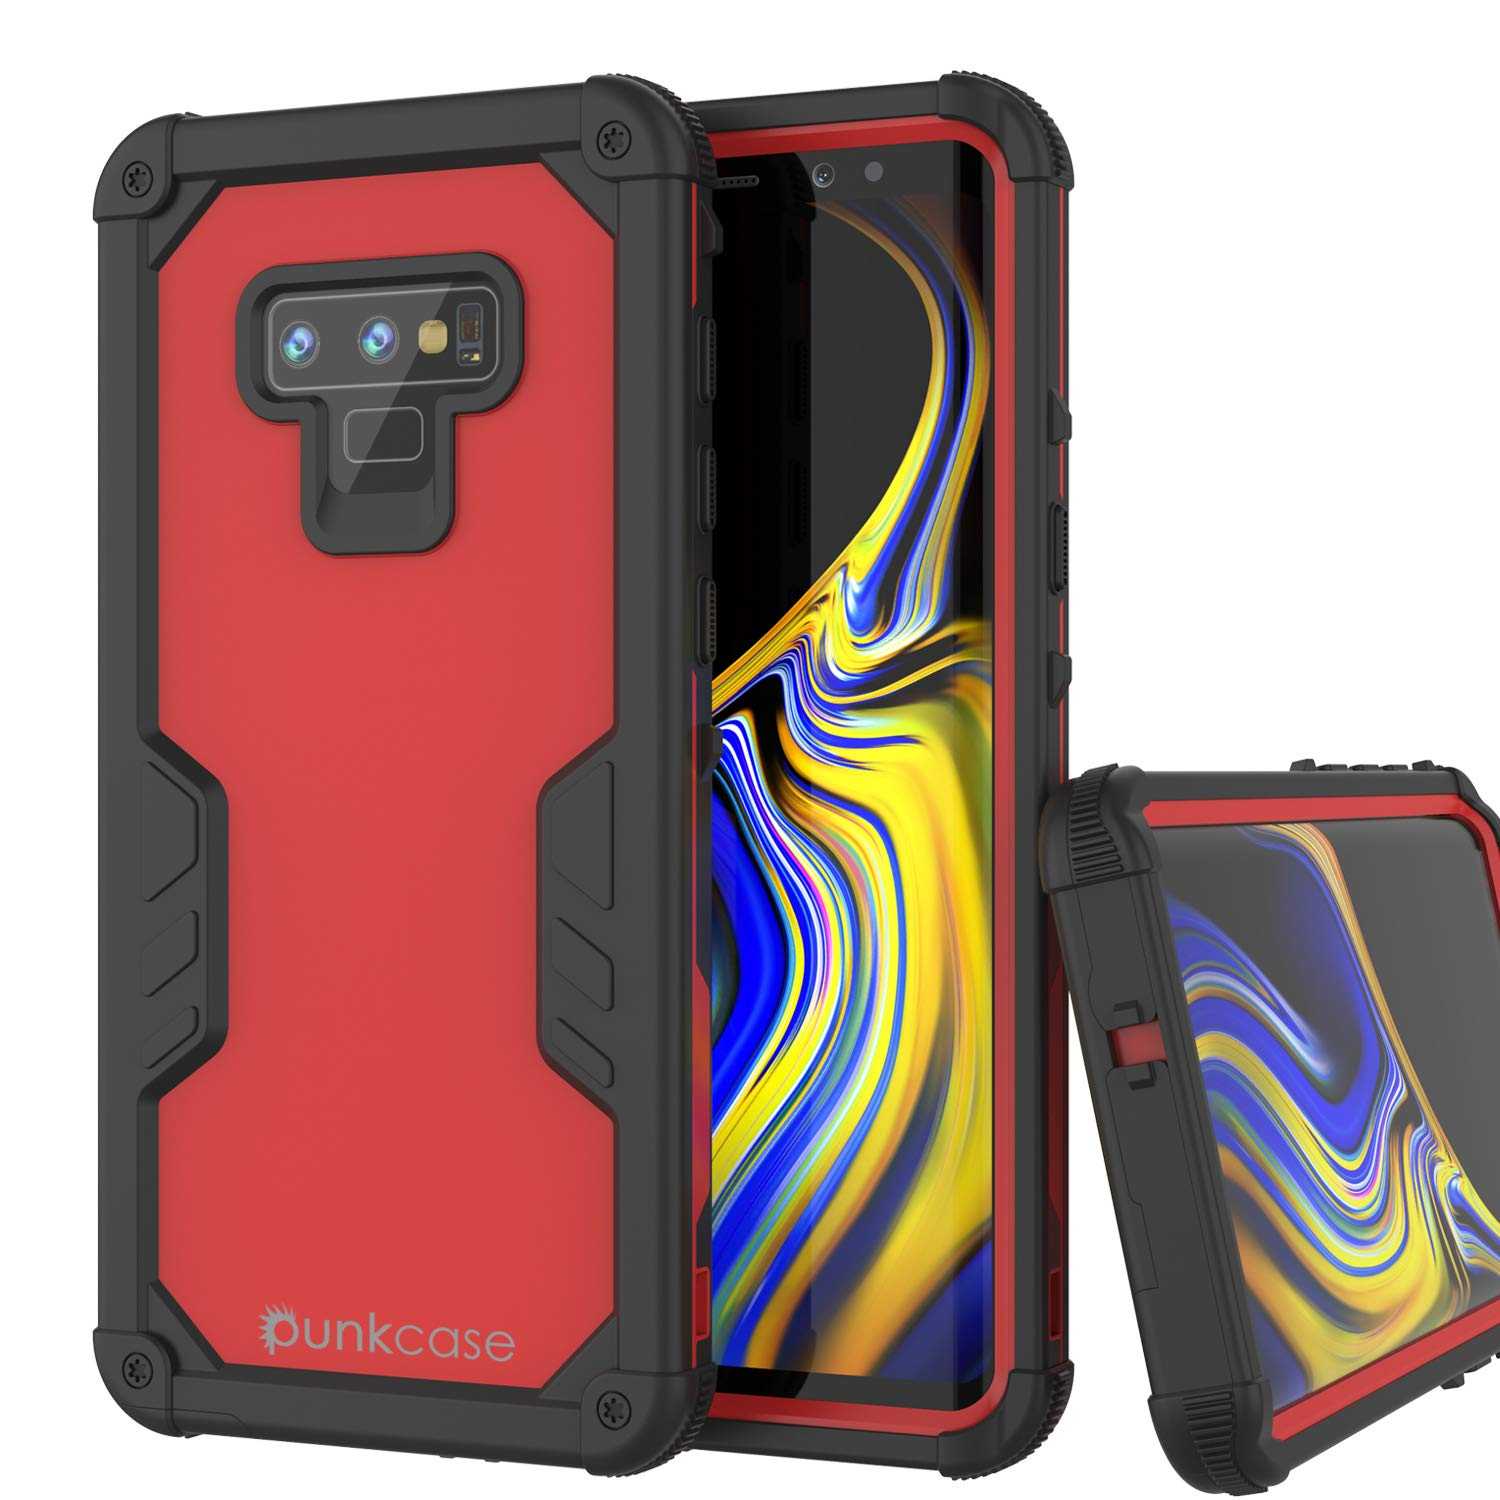 Punkcase Galaxy Note 9 Waterproof Case [Navy Seal Extreme Series] Armor Cover W/ Built In Screen Protector [Red]